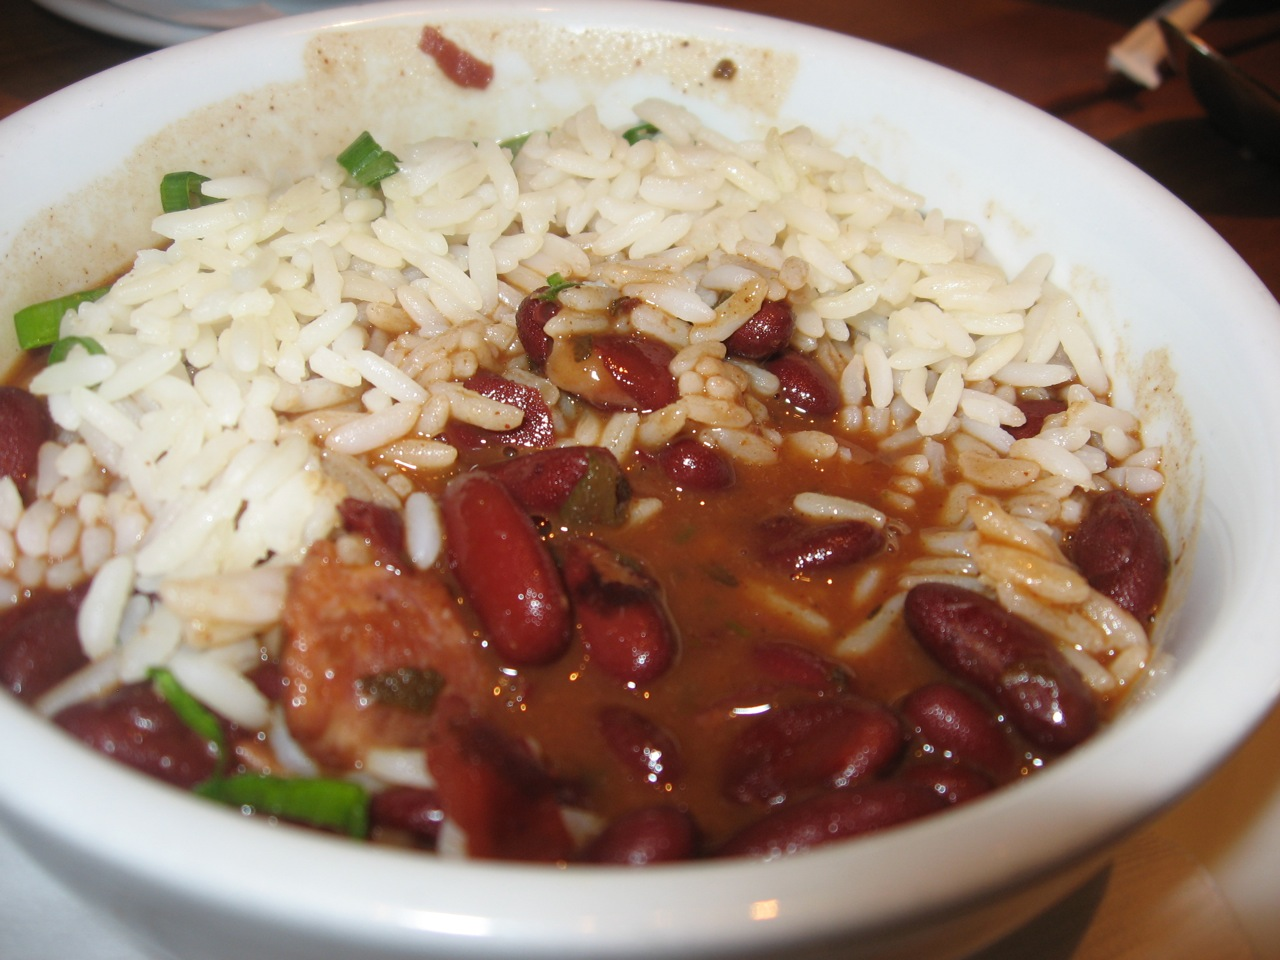 Archivo:Red Beans and Rice.jpg - Wikipedia, la enciclopedia libre